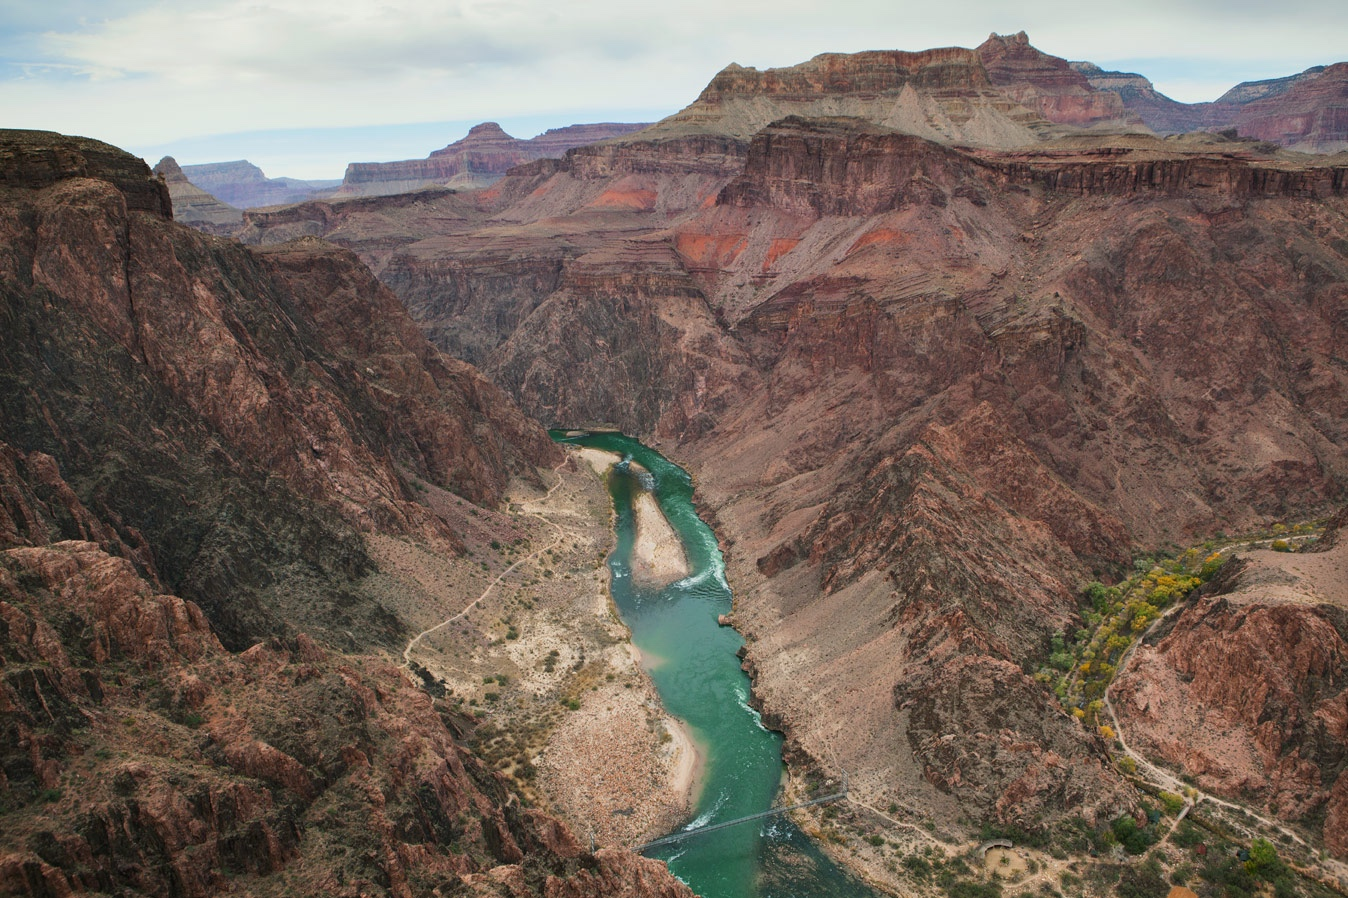 The Colorado river flows through the Inner Gorge of the Grand Canyon.